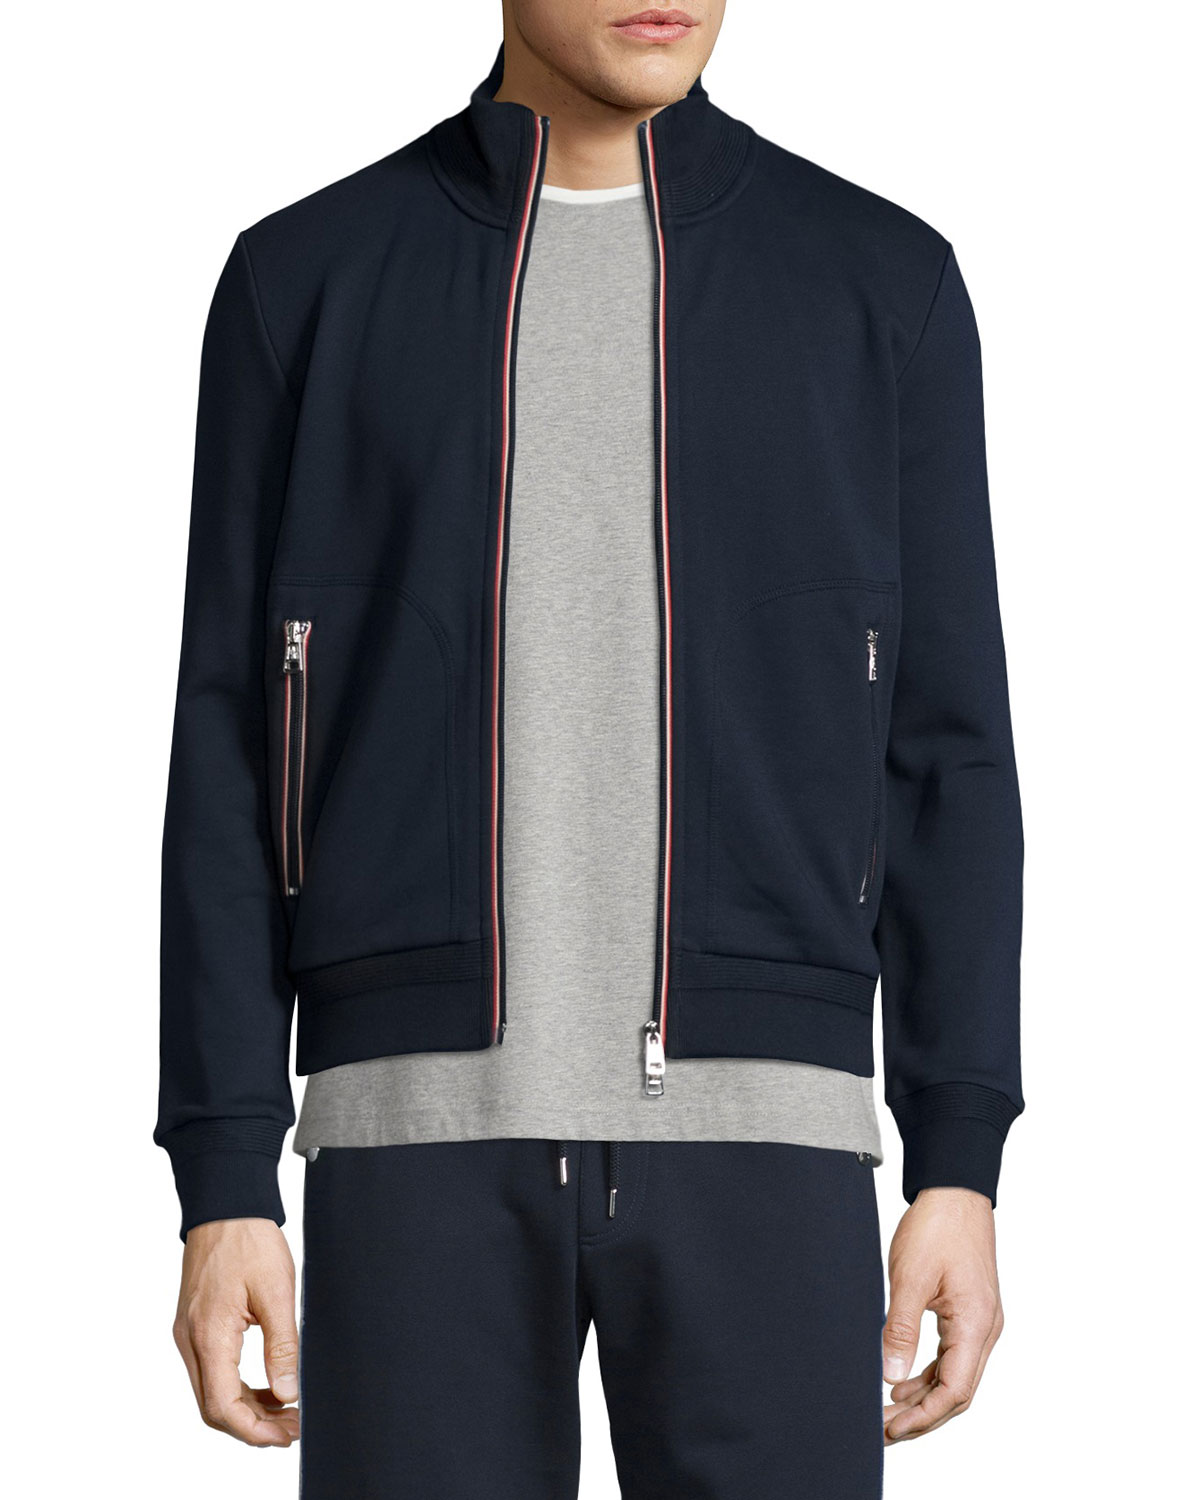 Moncler Full-Zip Track Jacket f4a44675a